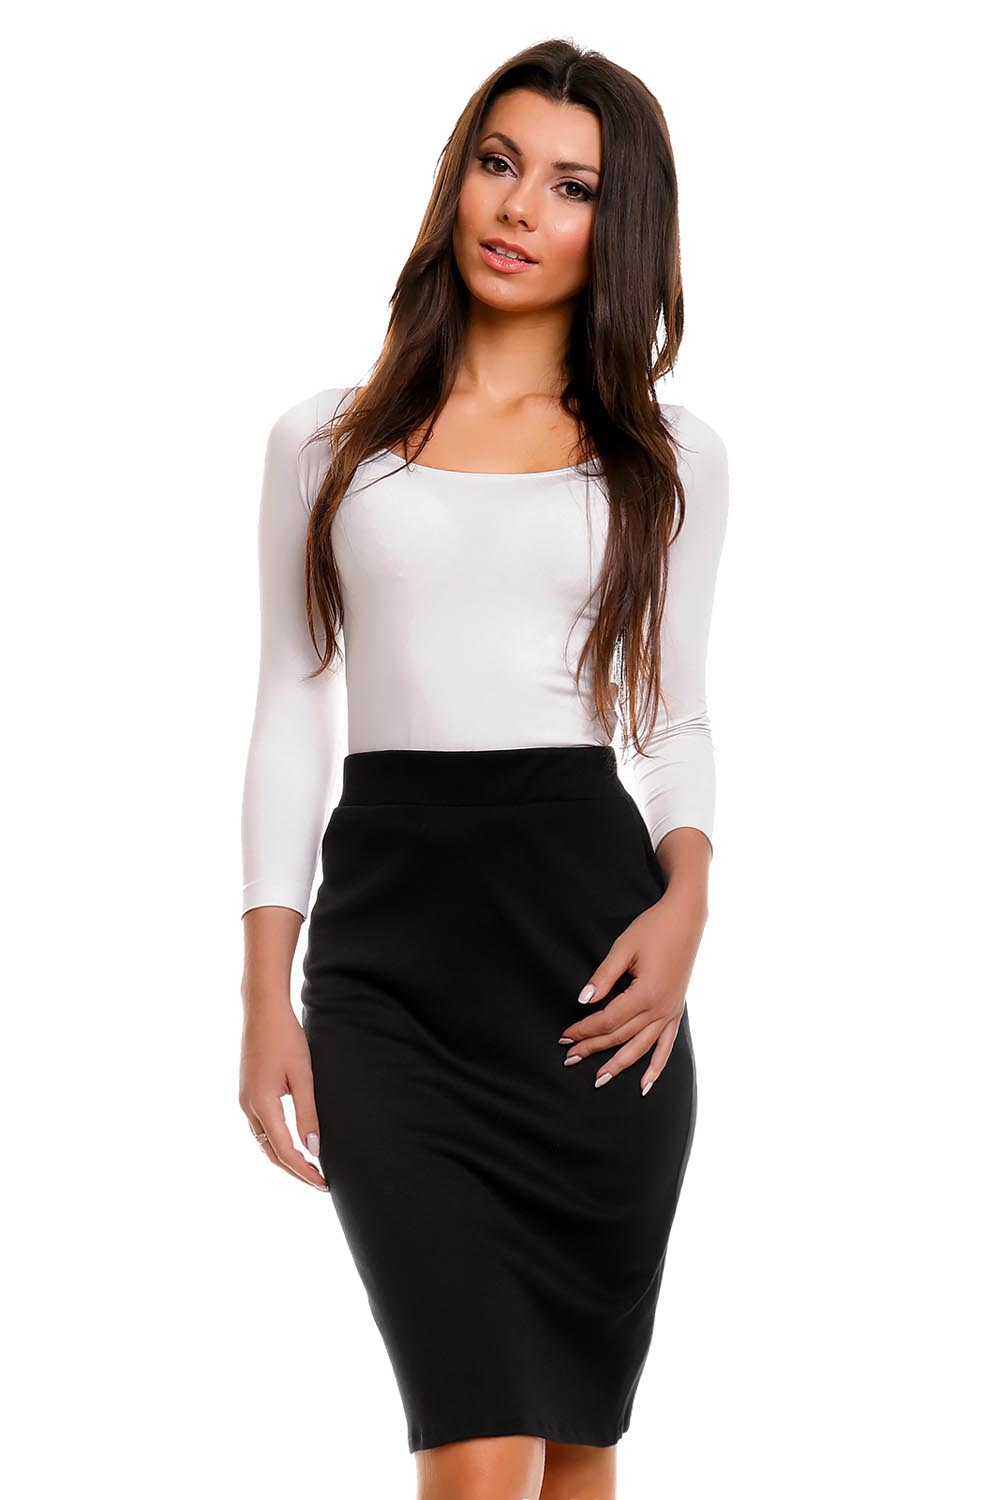 bd91bd483c5 Black Pencil Skirt with Back Zipper Fastening